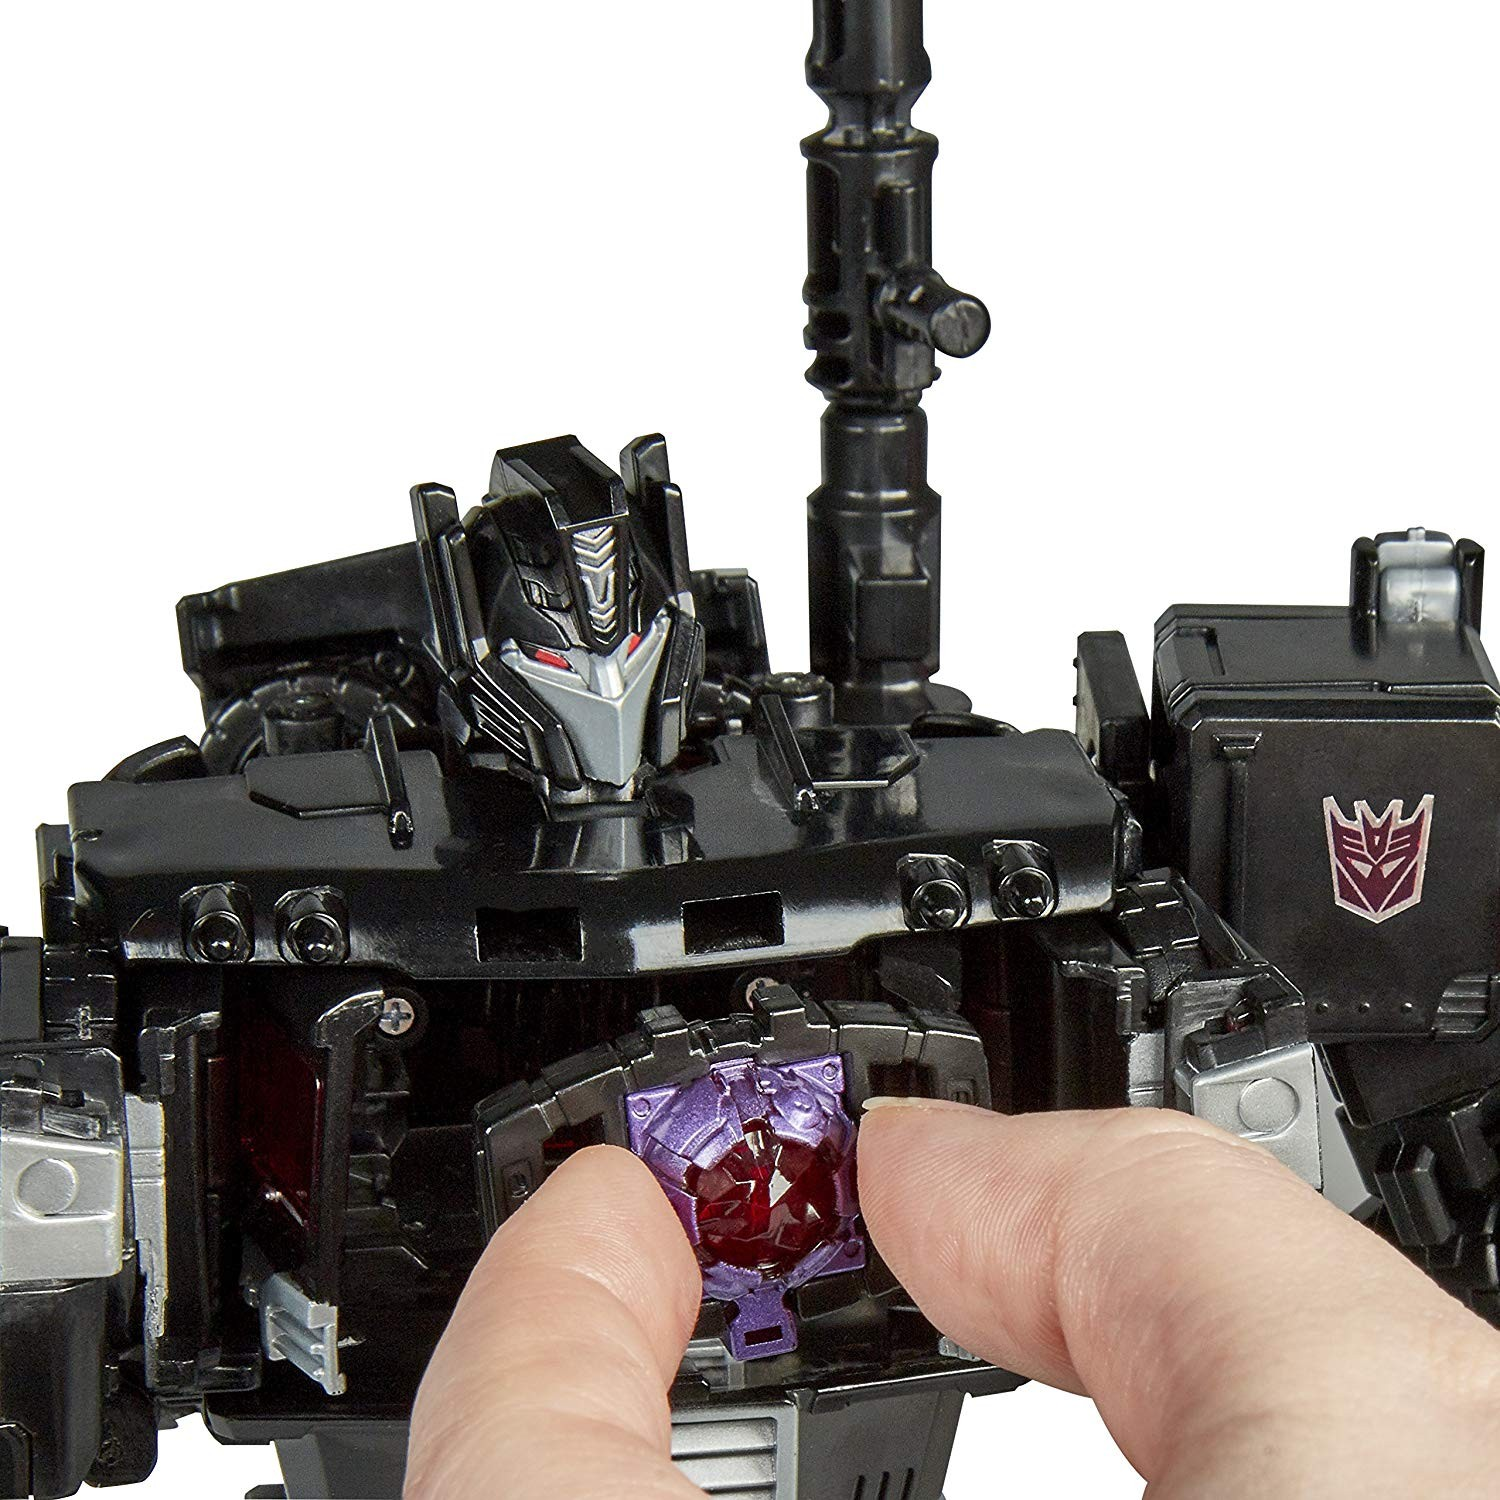 Transformers News: Transformers Power of the Primes Nemesis Prime Confirmed to be a Prime Day Item